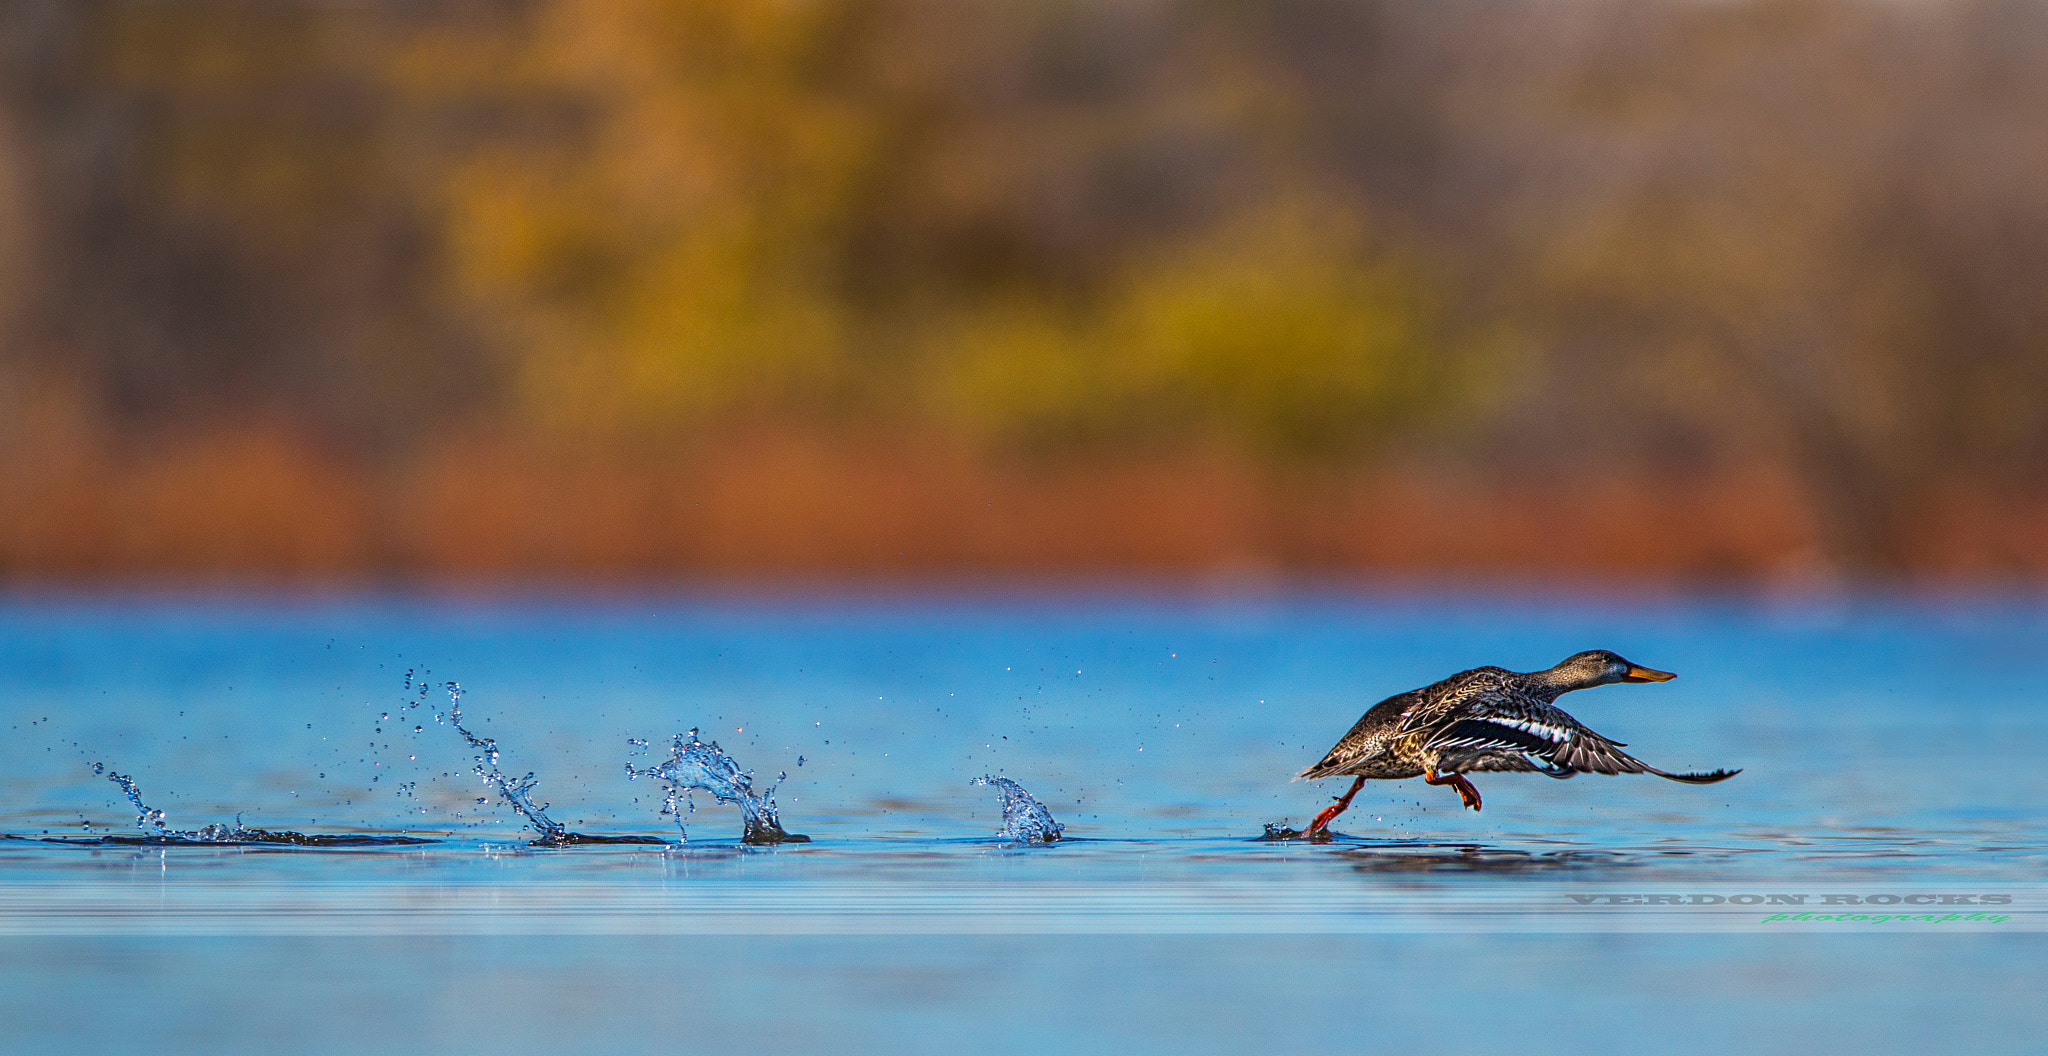 Photograph Run shoveler run by VERDON ROCKS on 500px